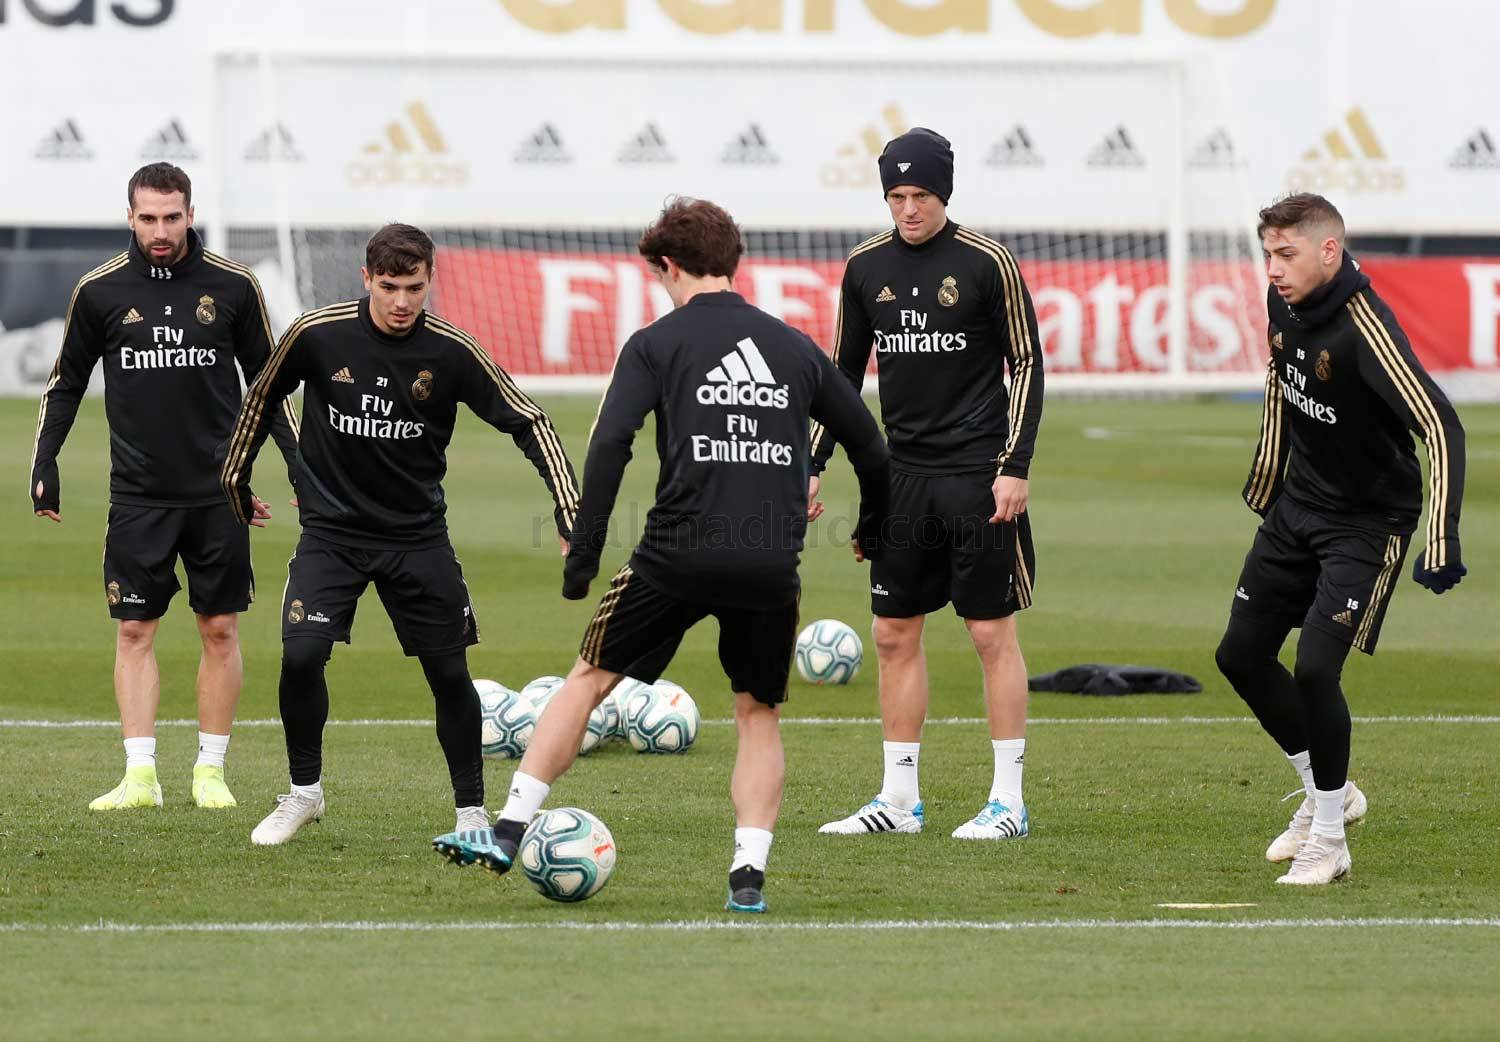 Real Madrid - Entrenamiento del Real Madrid  - 28-11-2019